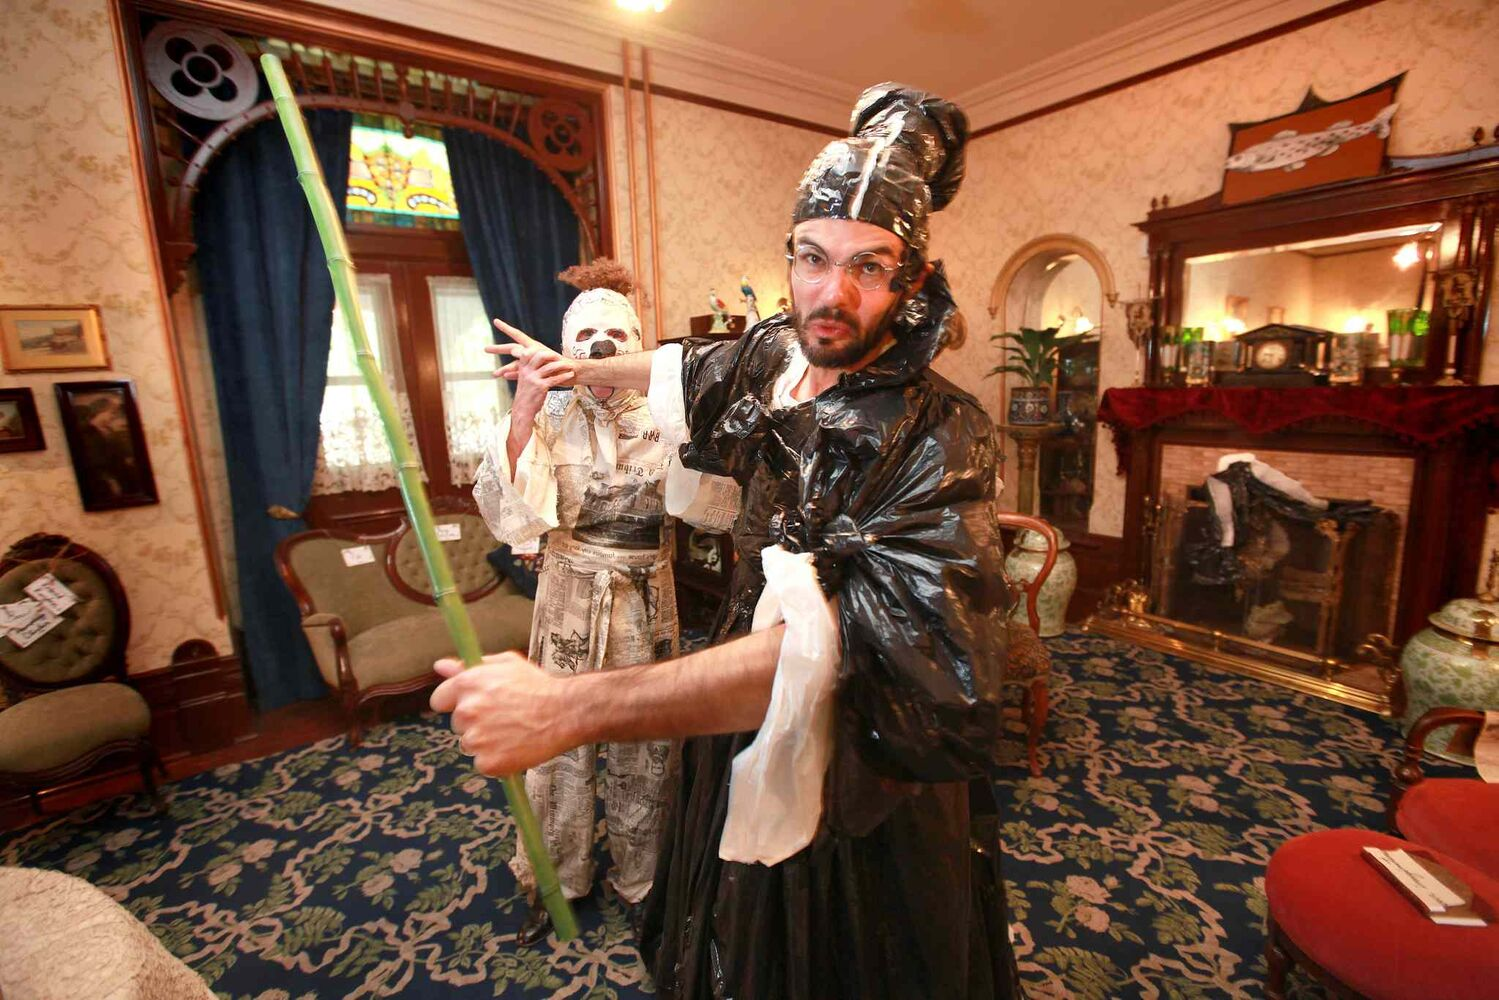 Actors Ian Mozdzen (front) and Doug Melnyk act out a scene from their play 'Dalnavert Copperfield' in this 2012 photo. The play is a performative tour that takes place throughout Dalnavert Museum, and is a mix of Charles Dickens and the real-life history of the museum. (Ruth Bonneville / Winnipeg Free Press archives)